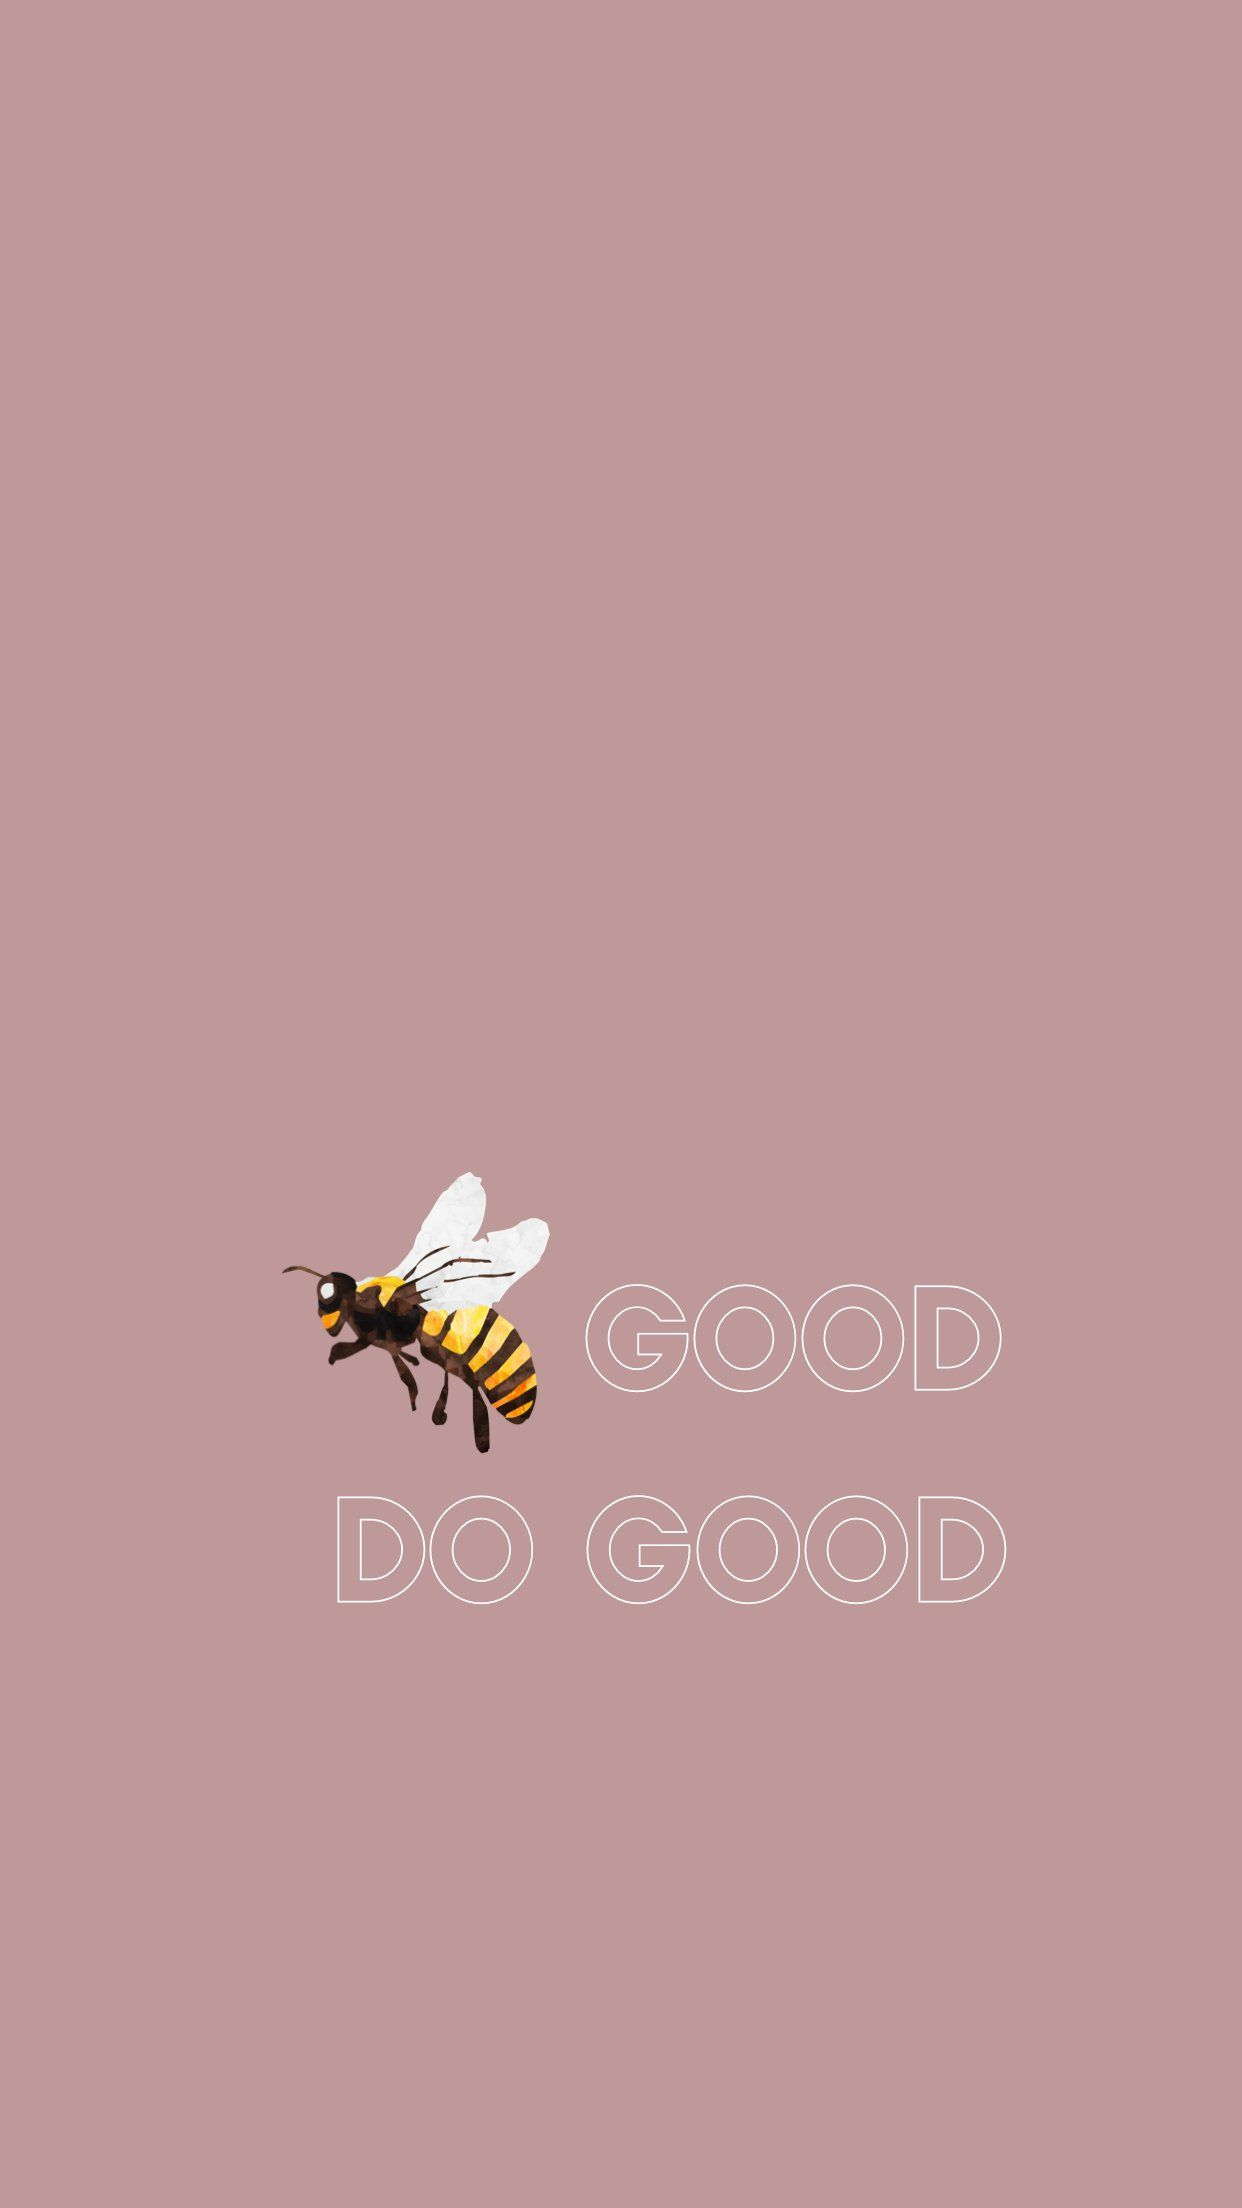 Bee Good Do Good Arvo Wallpaper Be Good Do Good Arvo